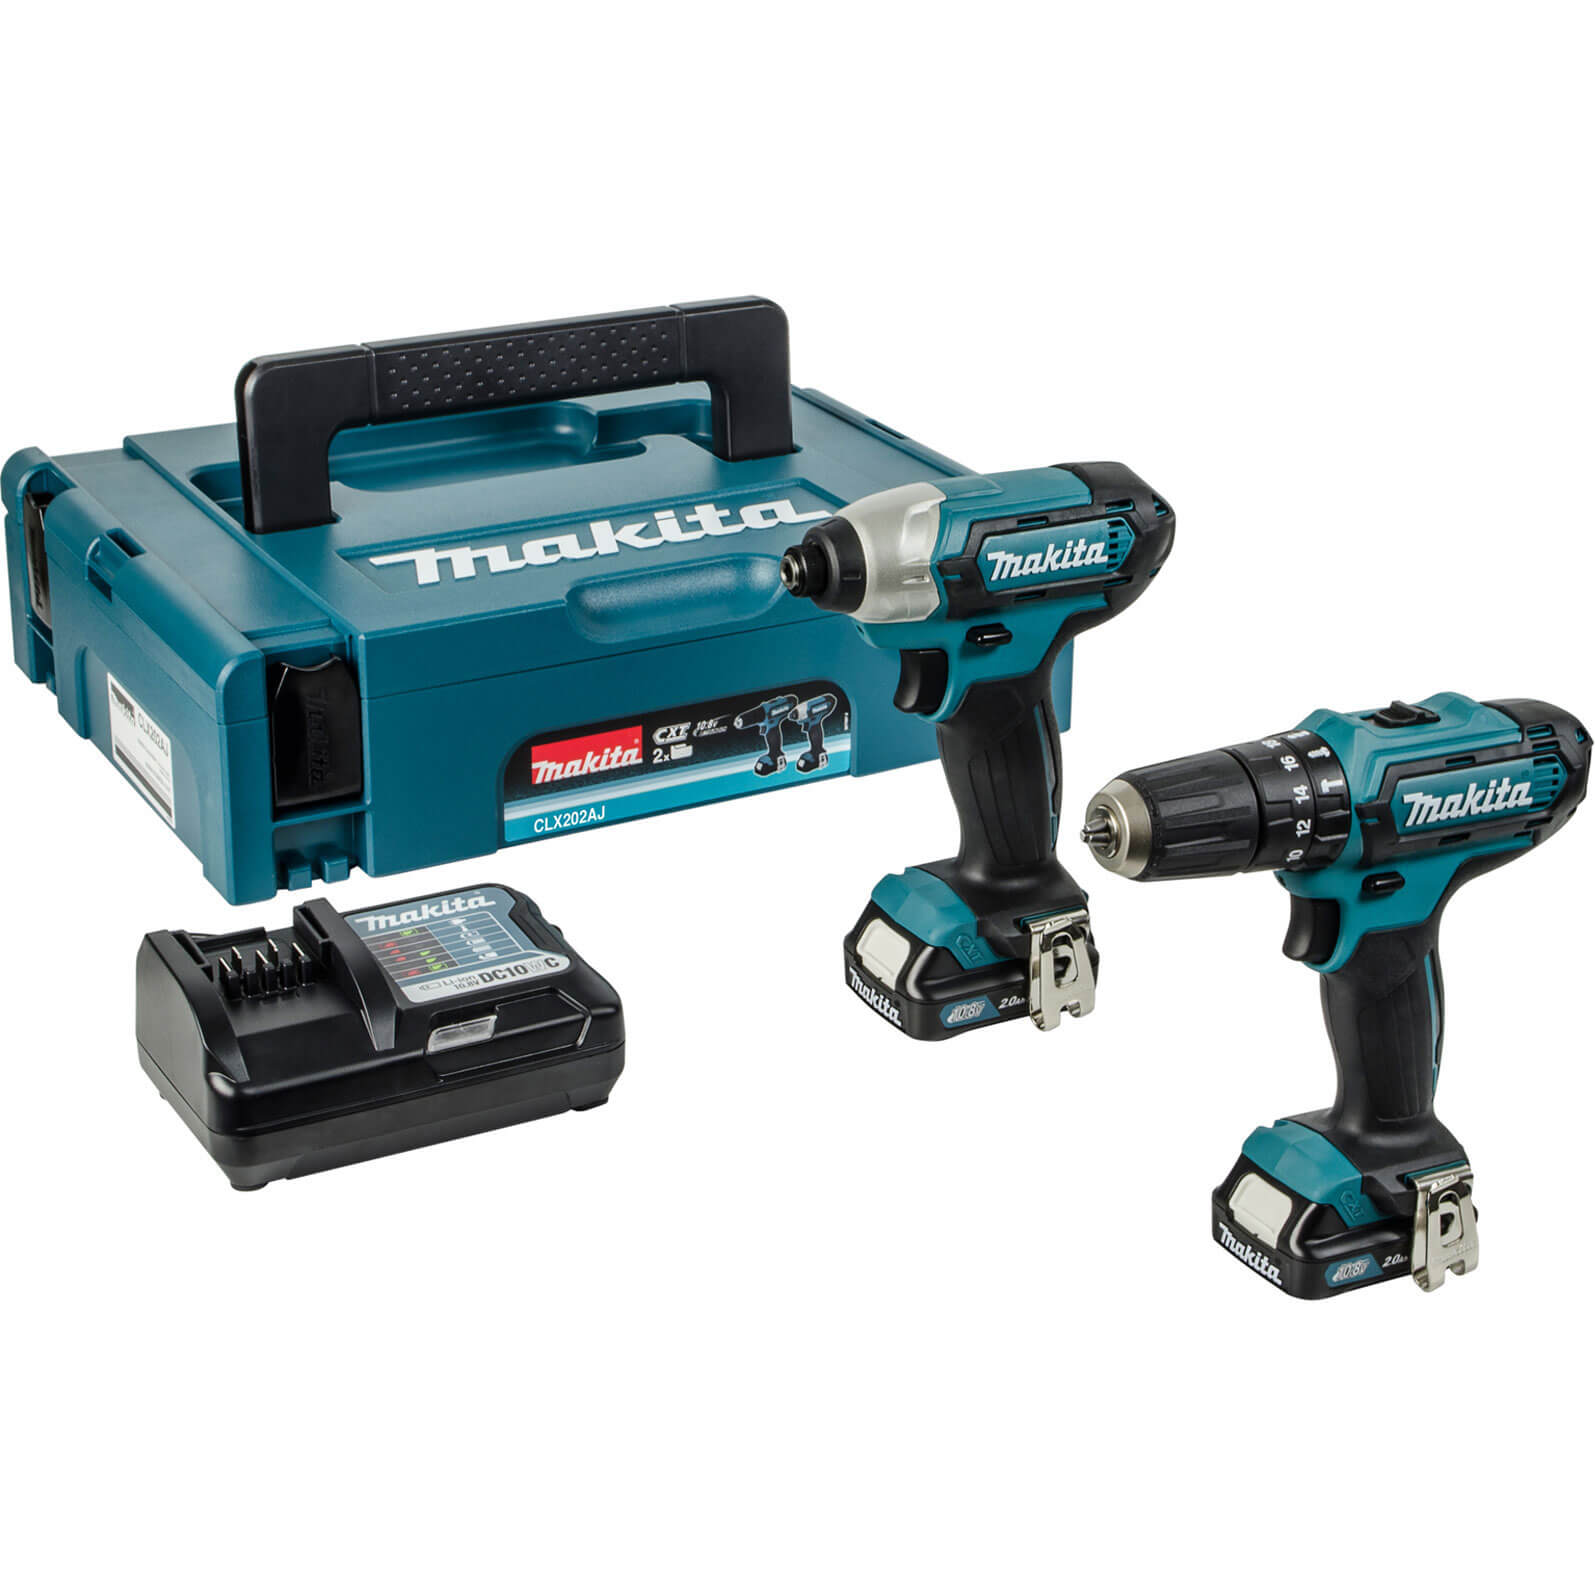 makita impact drill shop for cheap power tools and save online. Black Bedroom Furniture Sets. Home Design Ideas